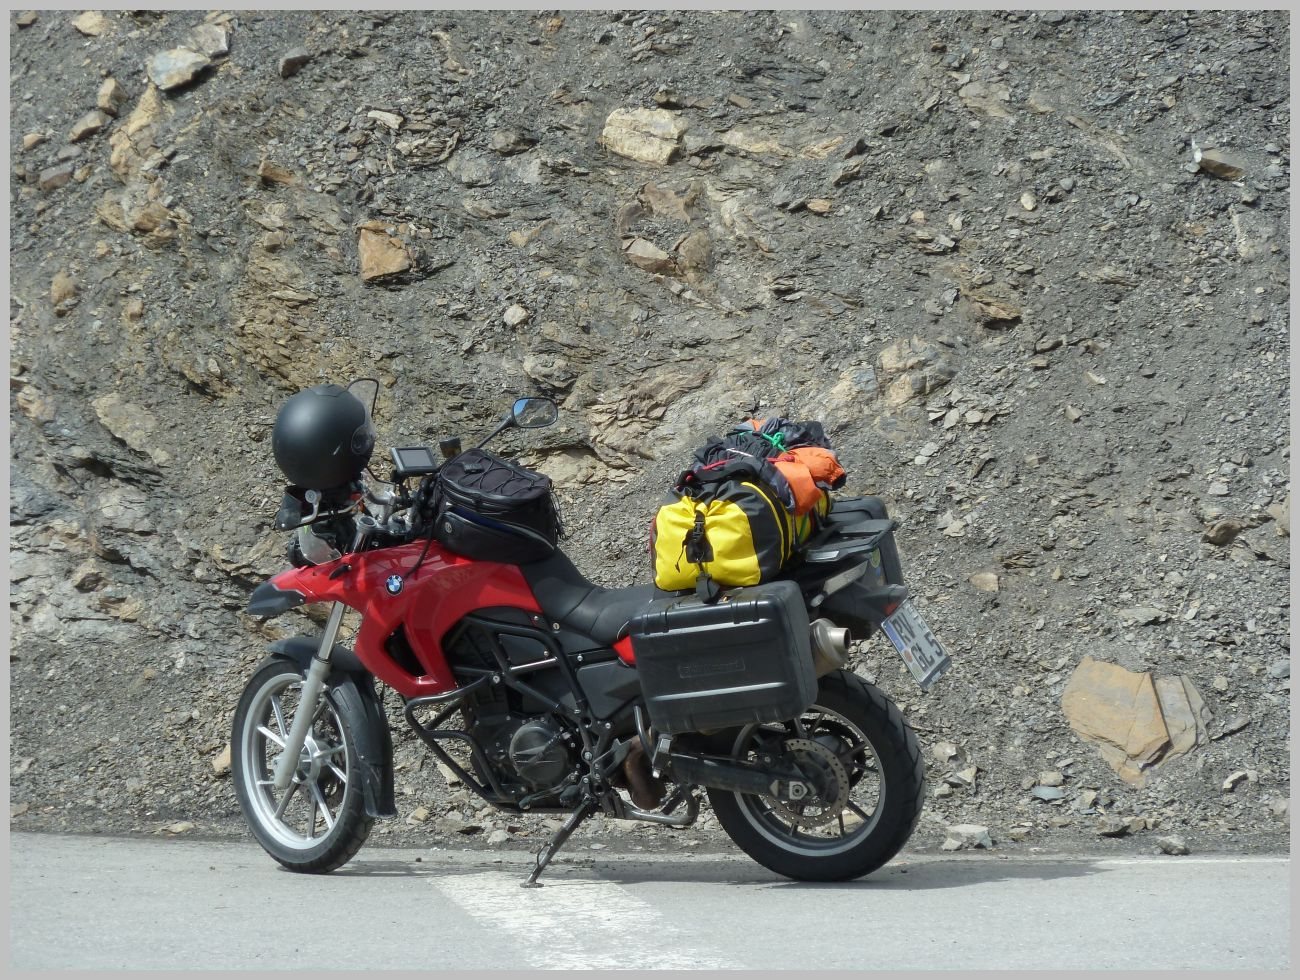 201206_Korsika_Moped052